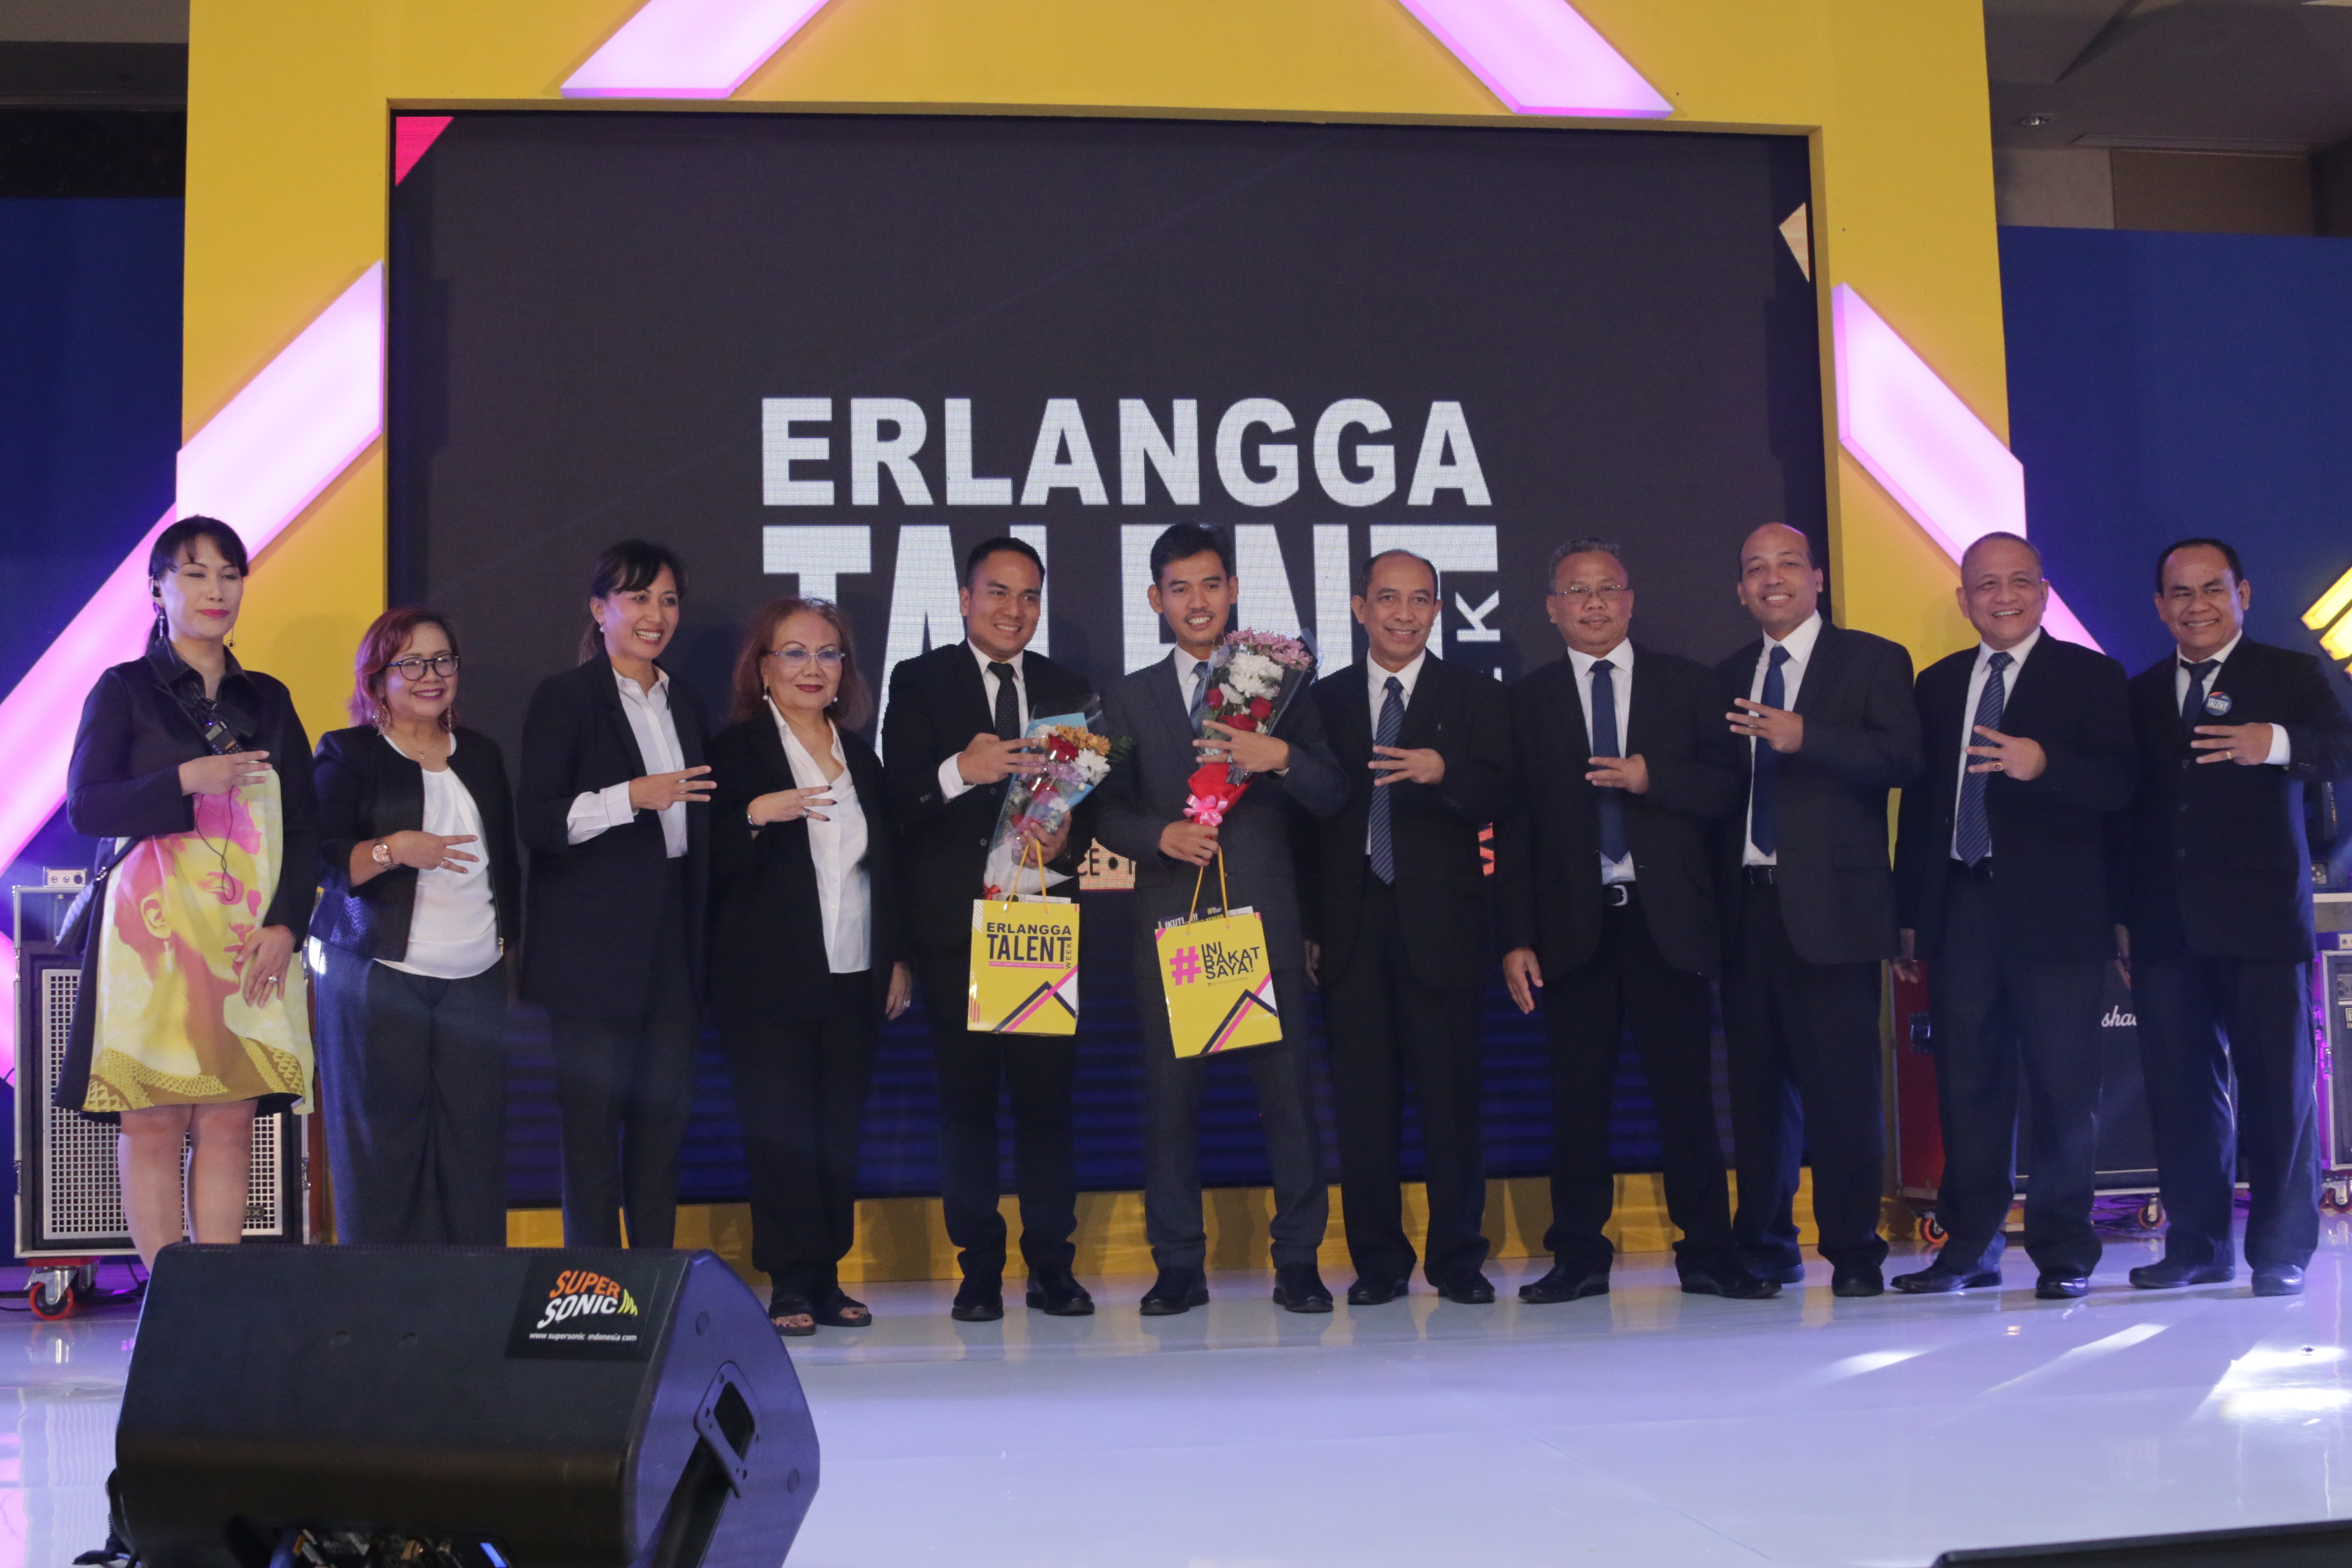 Opening Ceremony Erlangga Talent Week 2018 (25/10/2018)